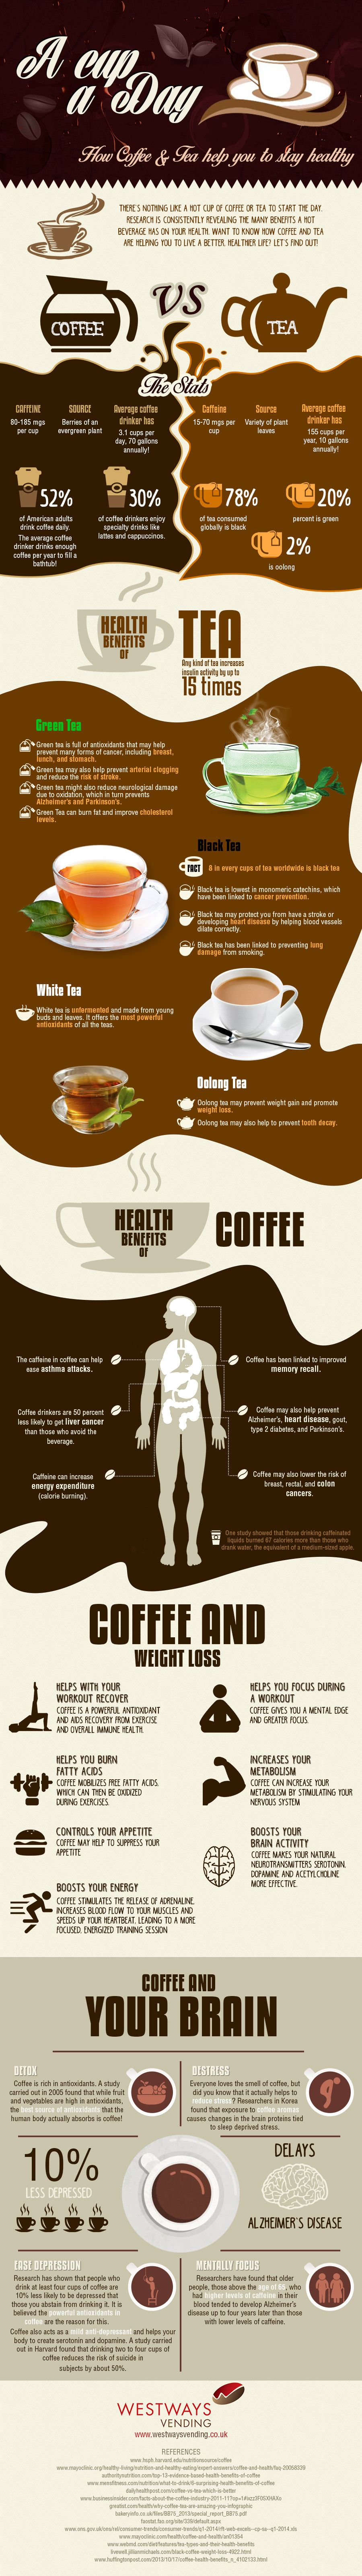 Health Benefits of Coffee Tea Infographic! A must see